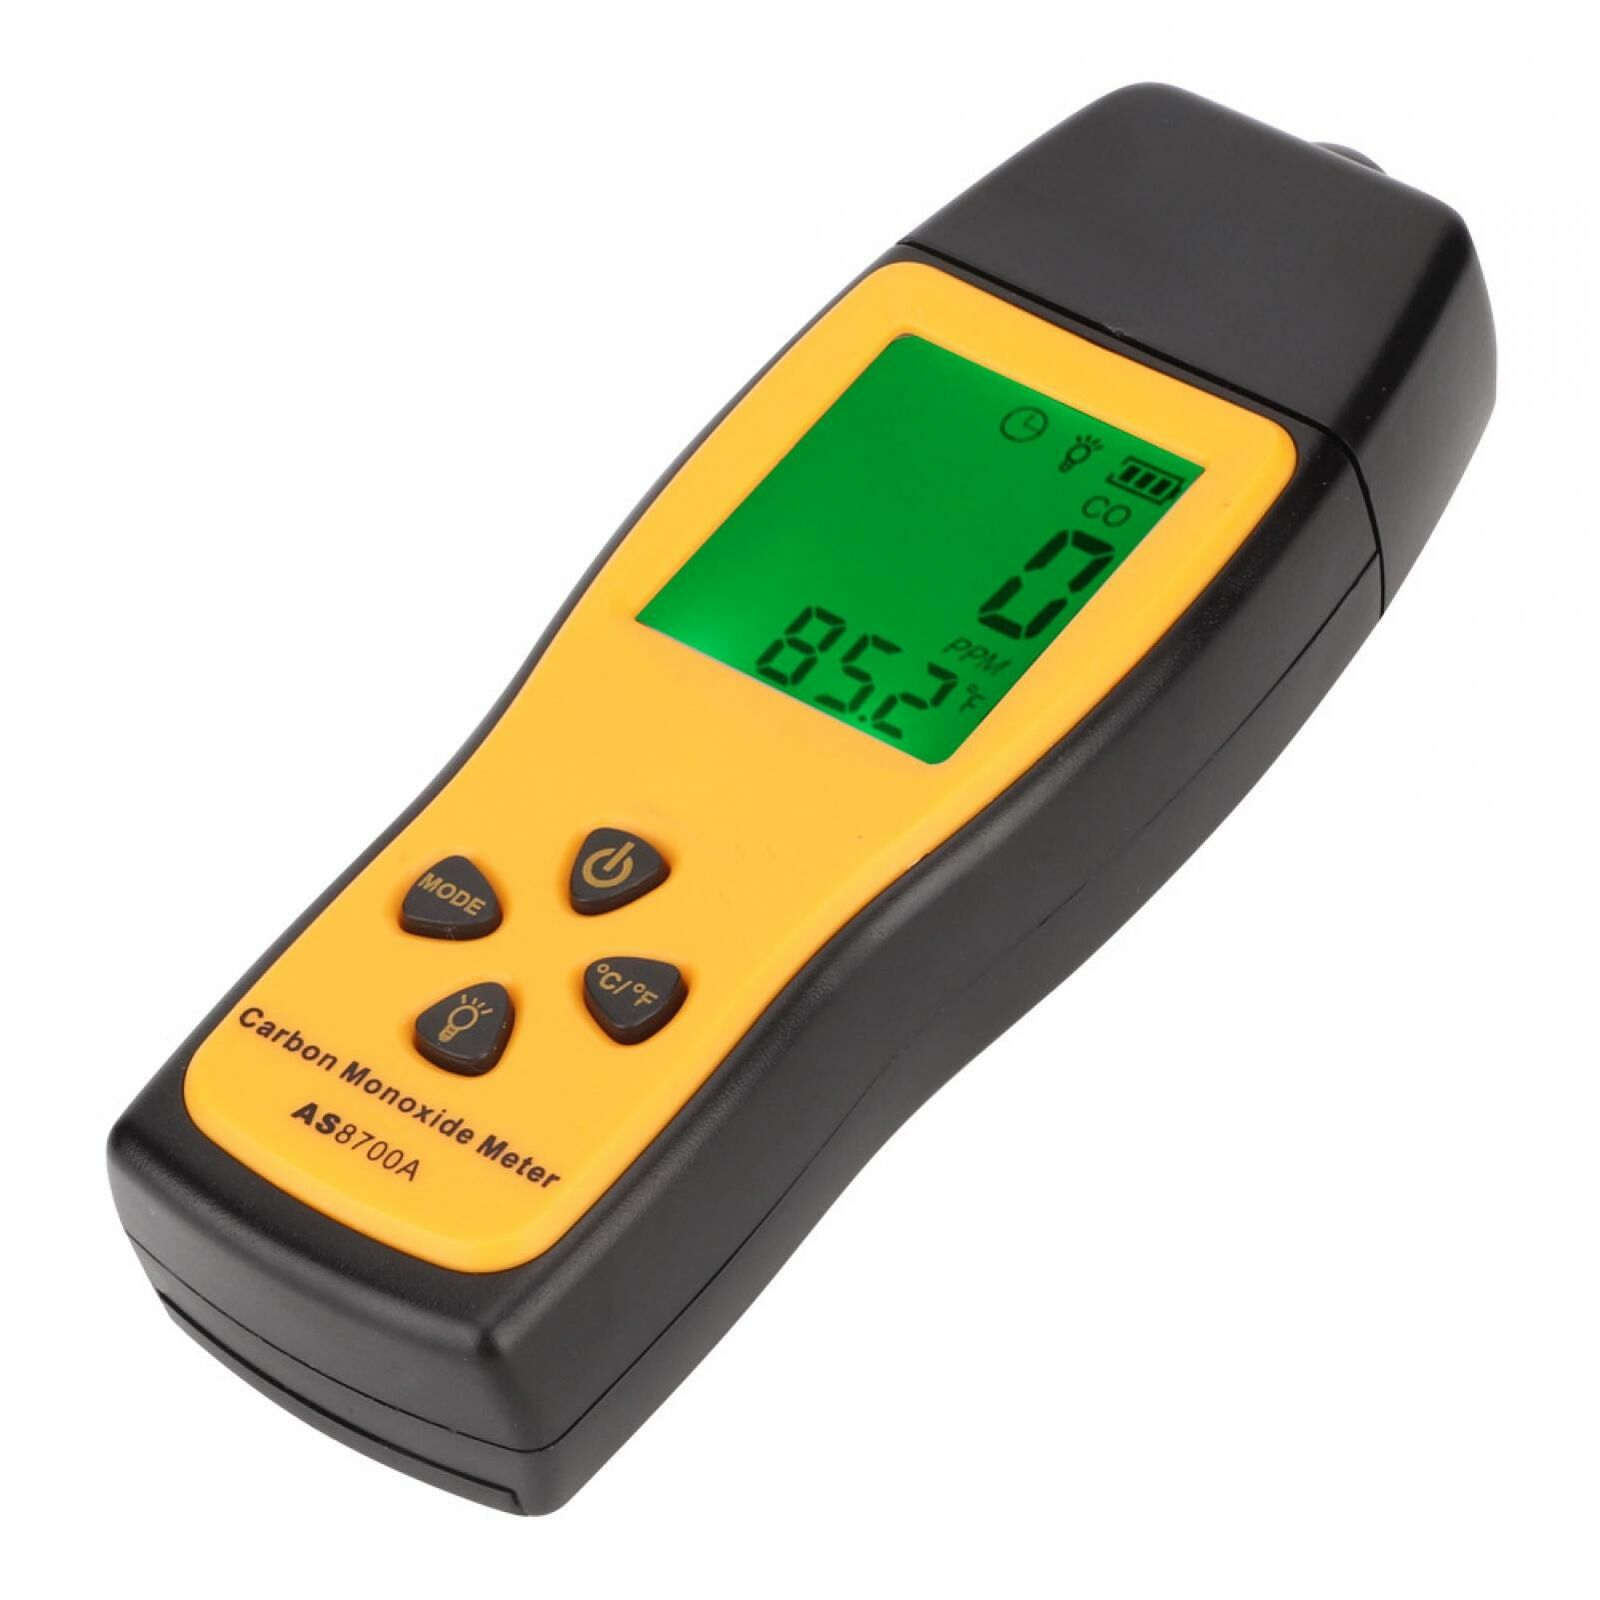 Carbon Monoxide Meter,Handheld CO Detector,Portable CO Gas Leak Detector LCD Display Sound and Light Alarm 0~1000ppm High Precision Detector Gas Analyzer